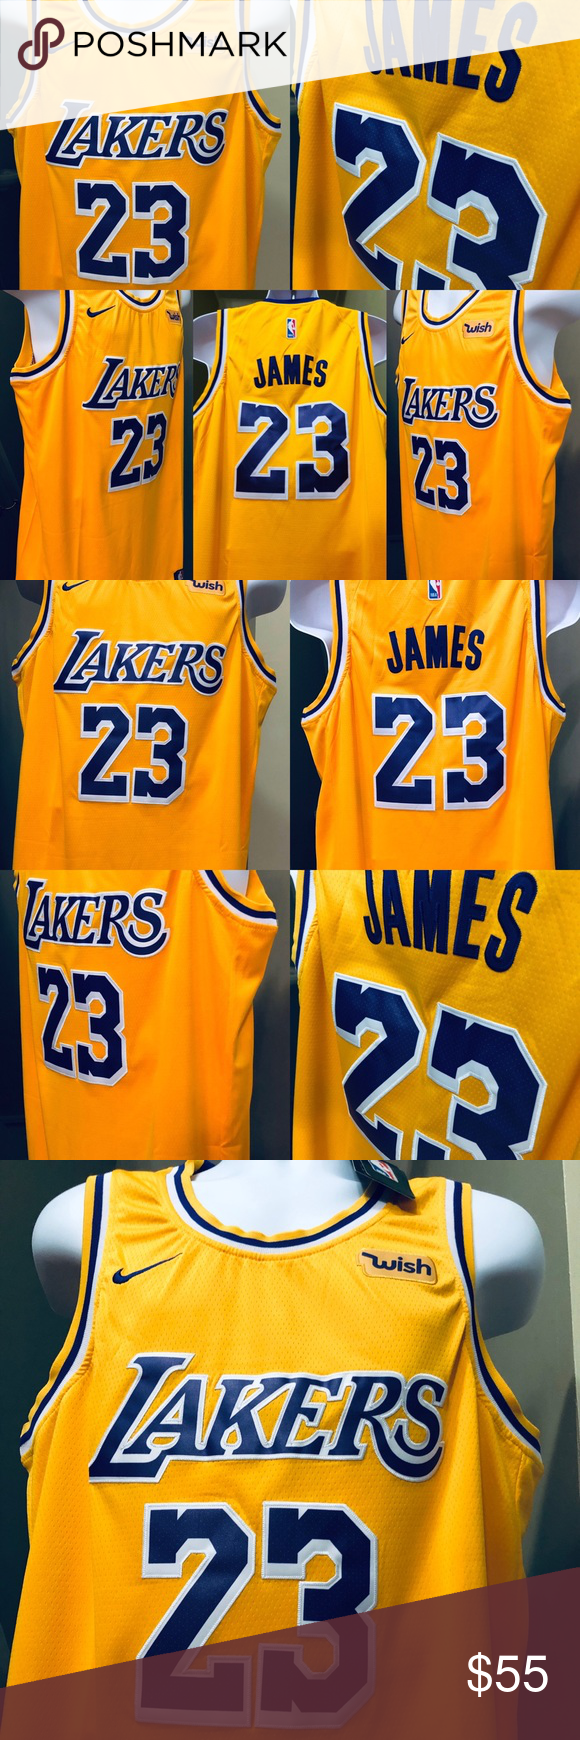 23525a322 Los Angeles Lakers LeBron James 23 Swingman Jersey Los Angeles LA Lakers • LeBron  James  23 Nike Gold 2018 19 Swingman Jersey Adult Men s Size   Large (50)  ...